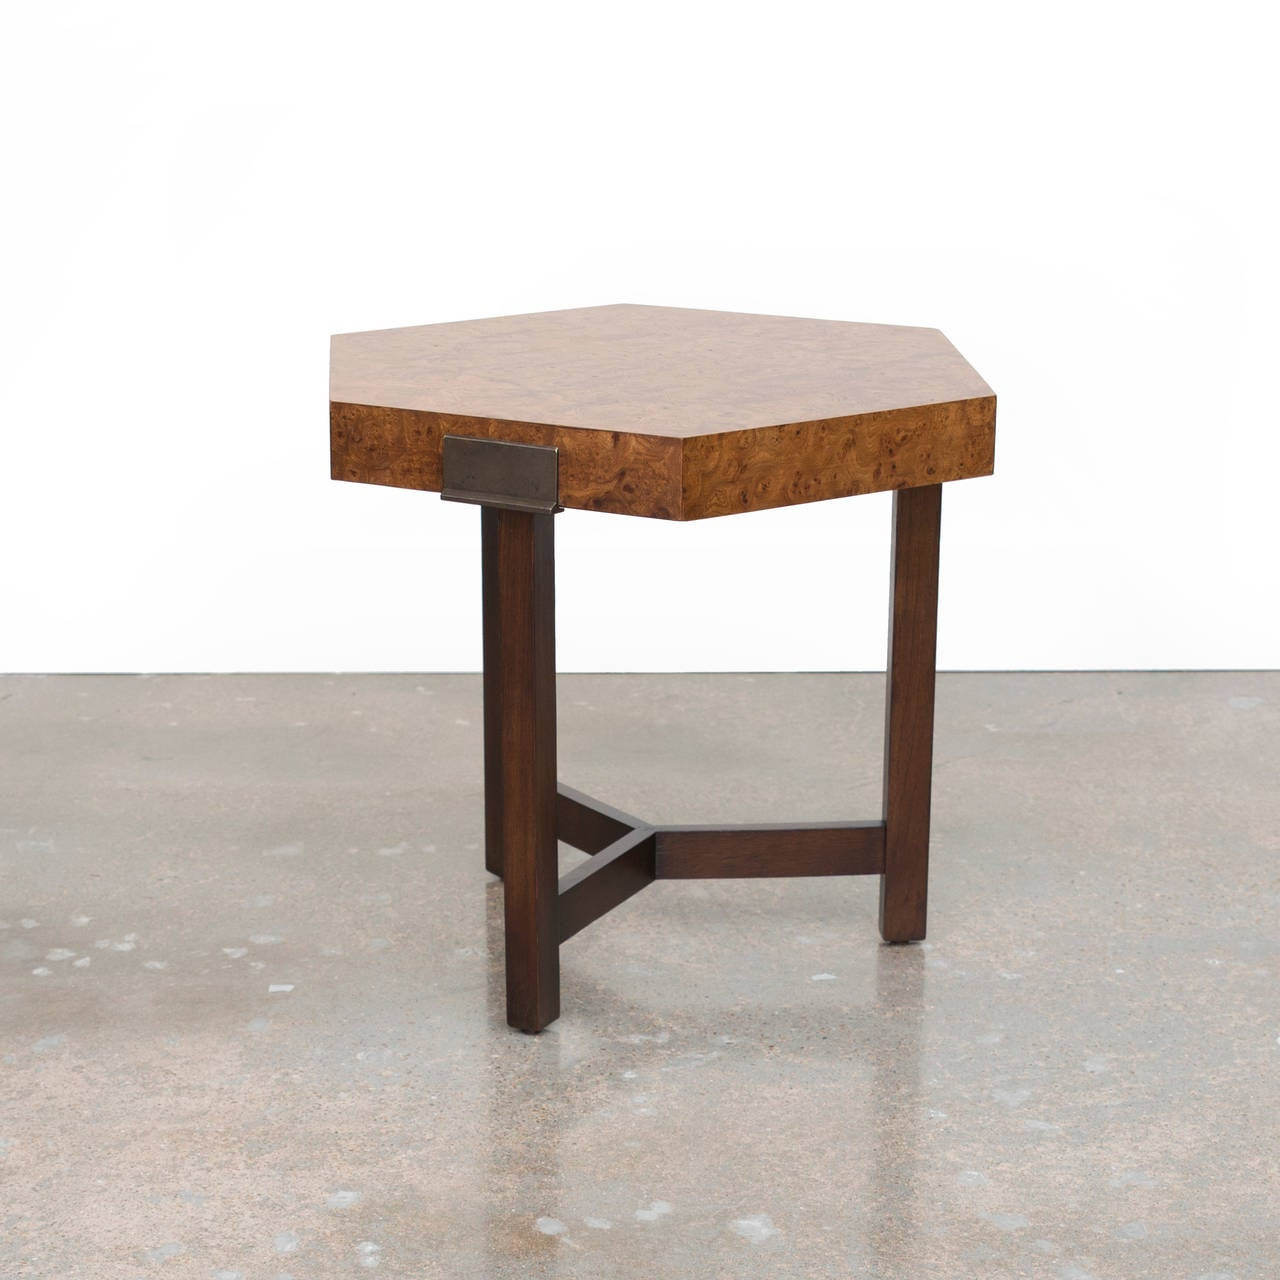 Vintage Burled Cypress Wood Live Edge Side Table At 1stdibs: Milo Baughman Hexagonal Burl Wood And Brass Side Table At